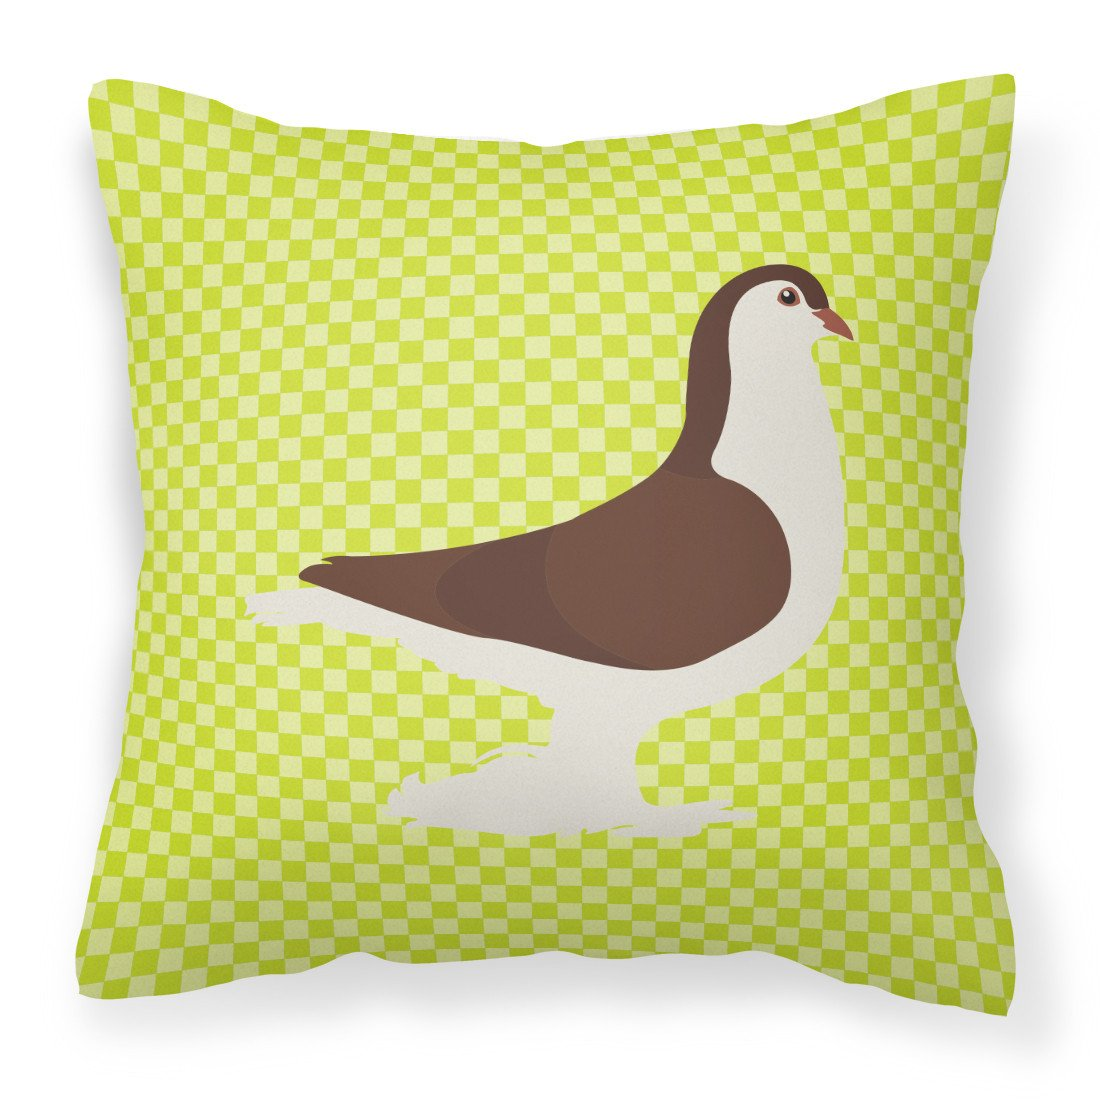 Large Pigeon Green Fabric Decorative Pillow BB7769PW1818 by Caroline's Treasures